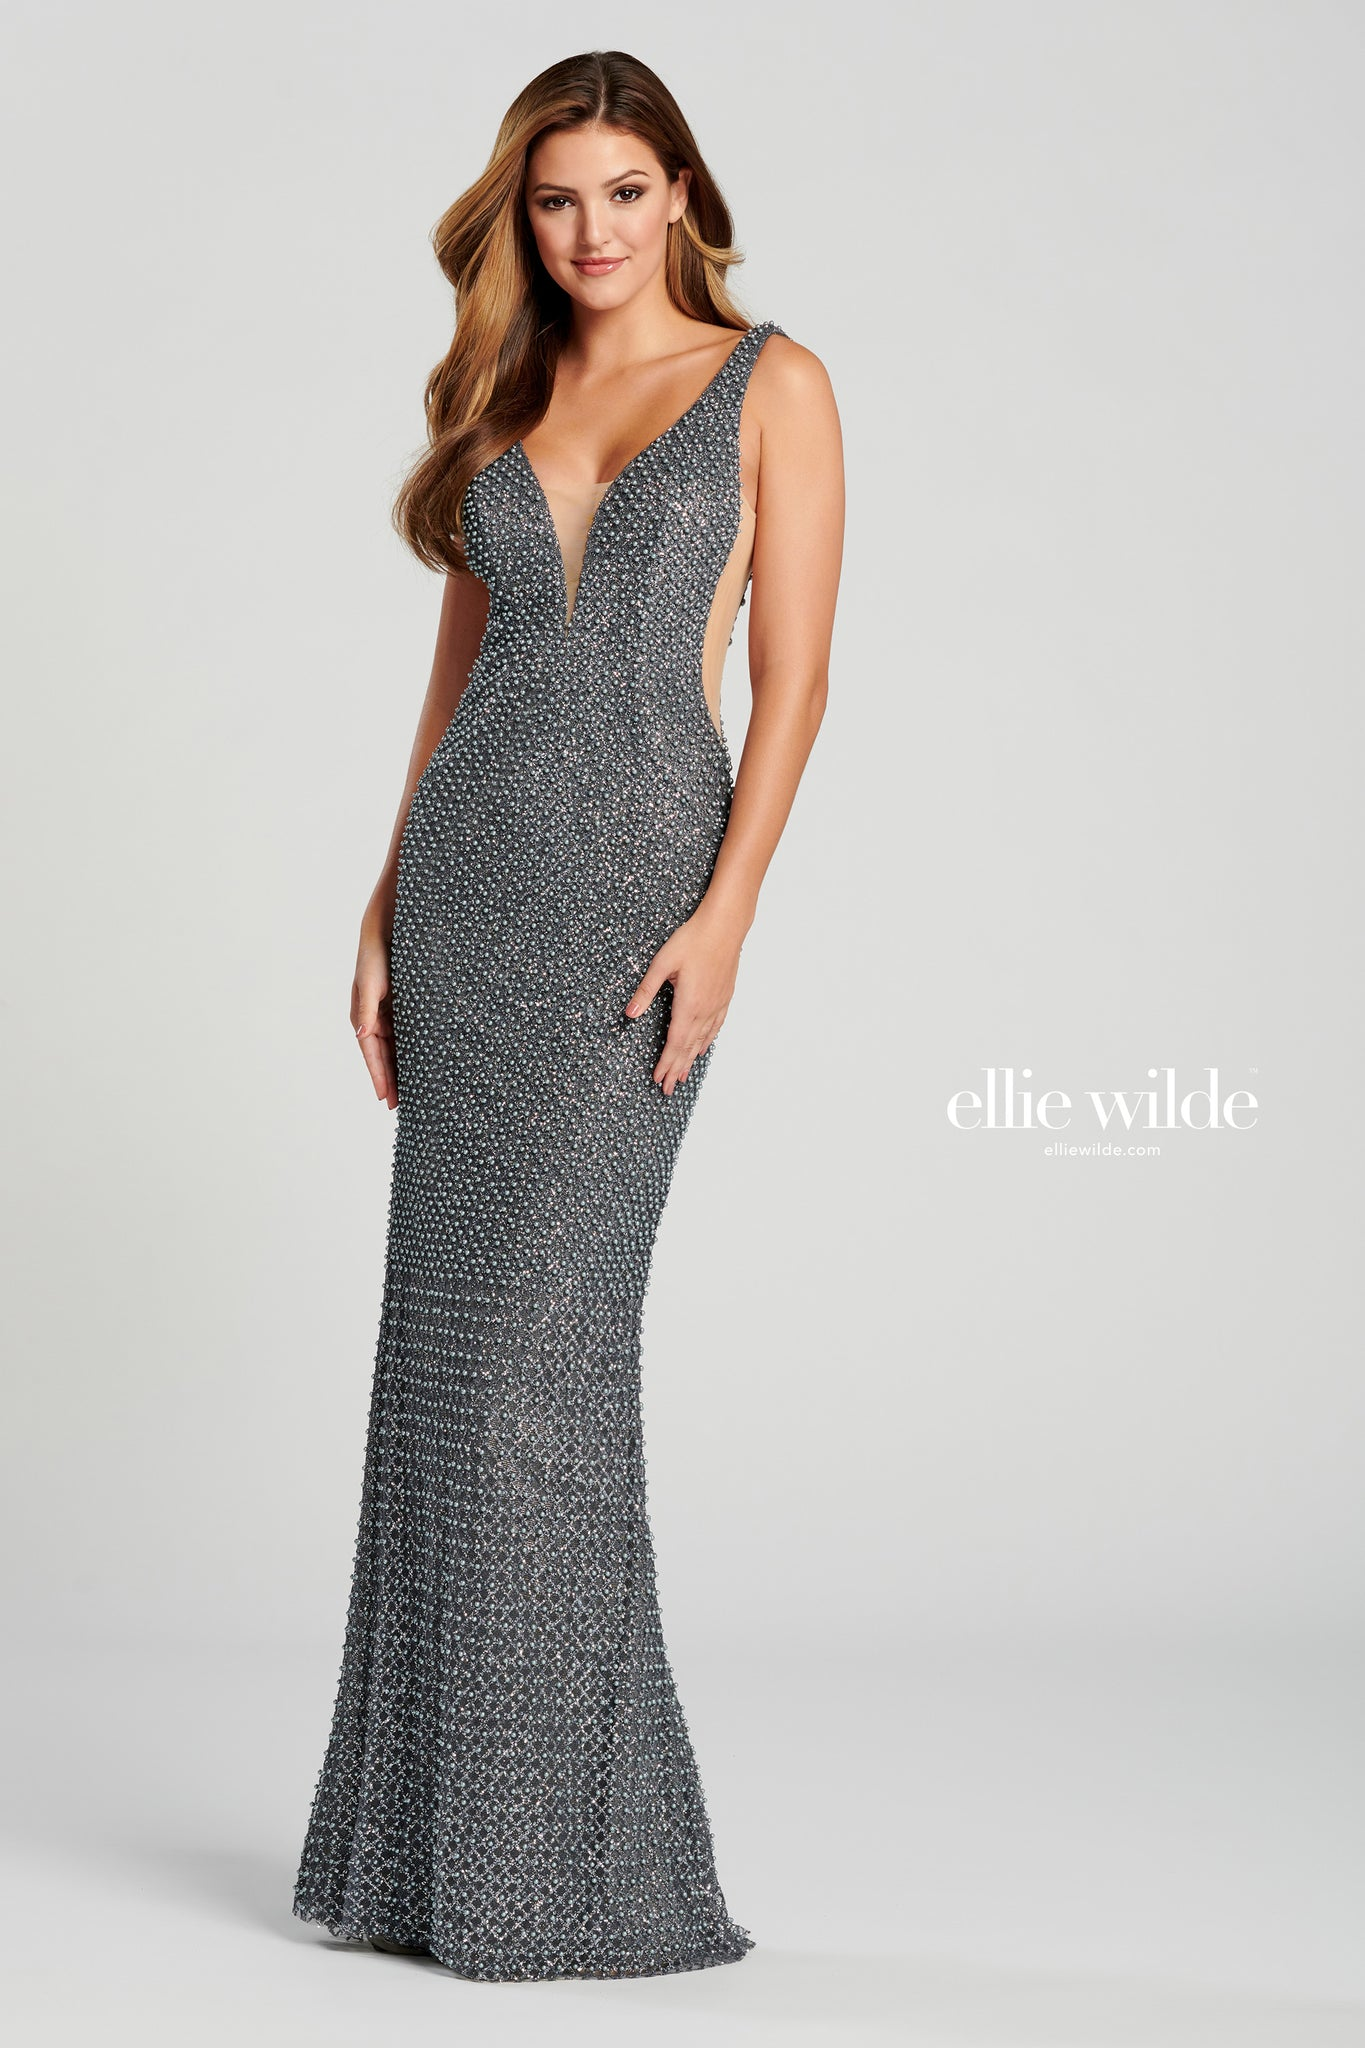 Ellie Wilde Gunmetal Pearl Embellished Evening Gown - Gissings Boutique